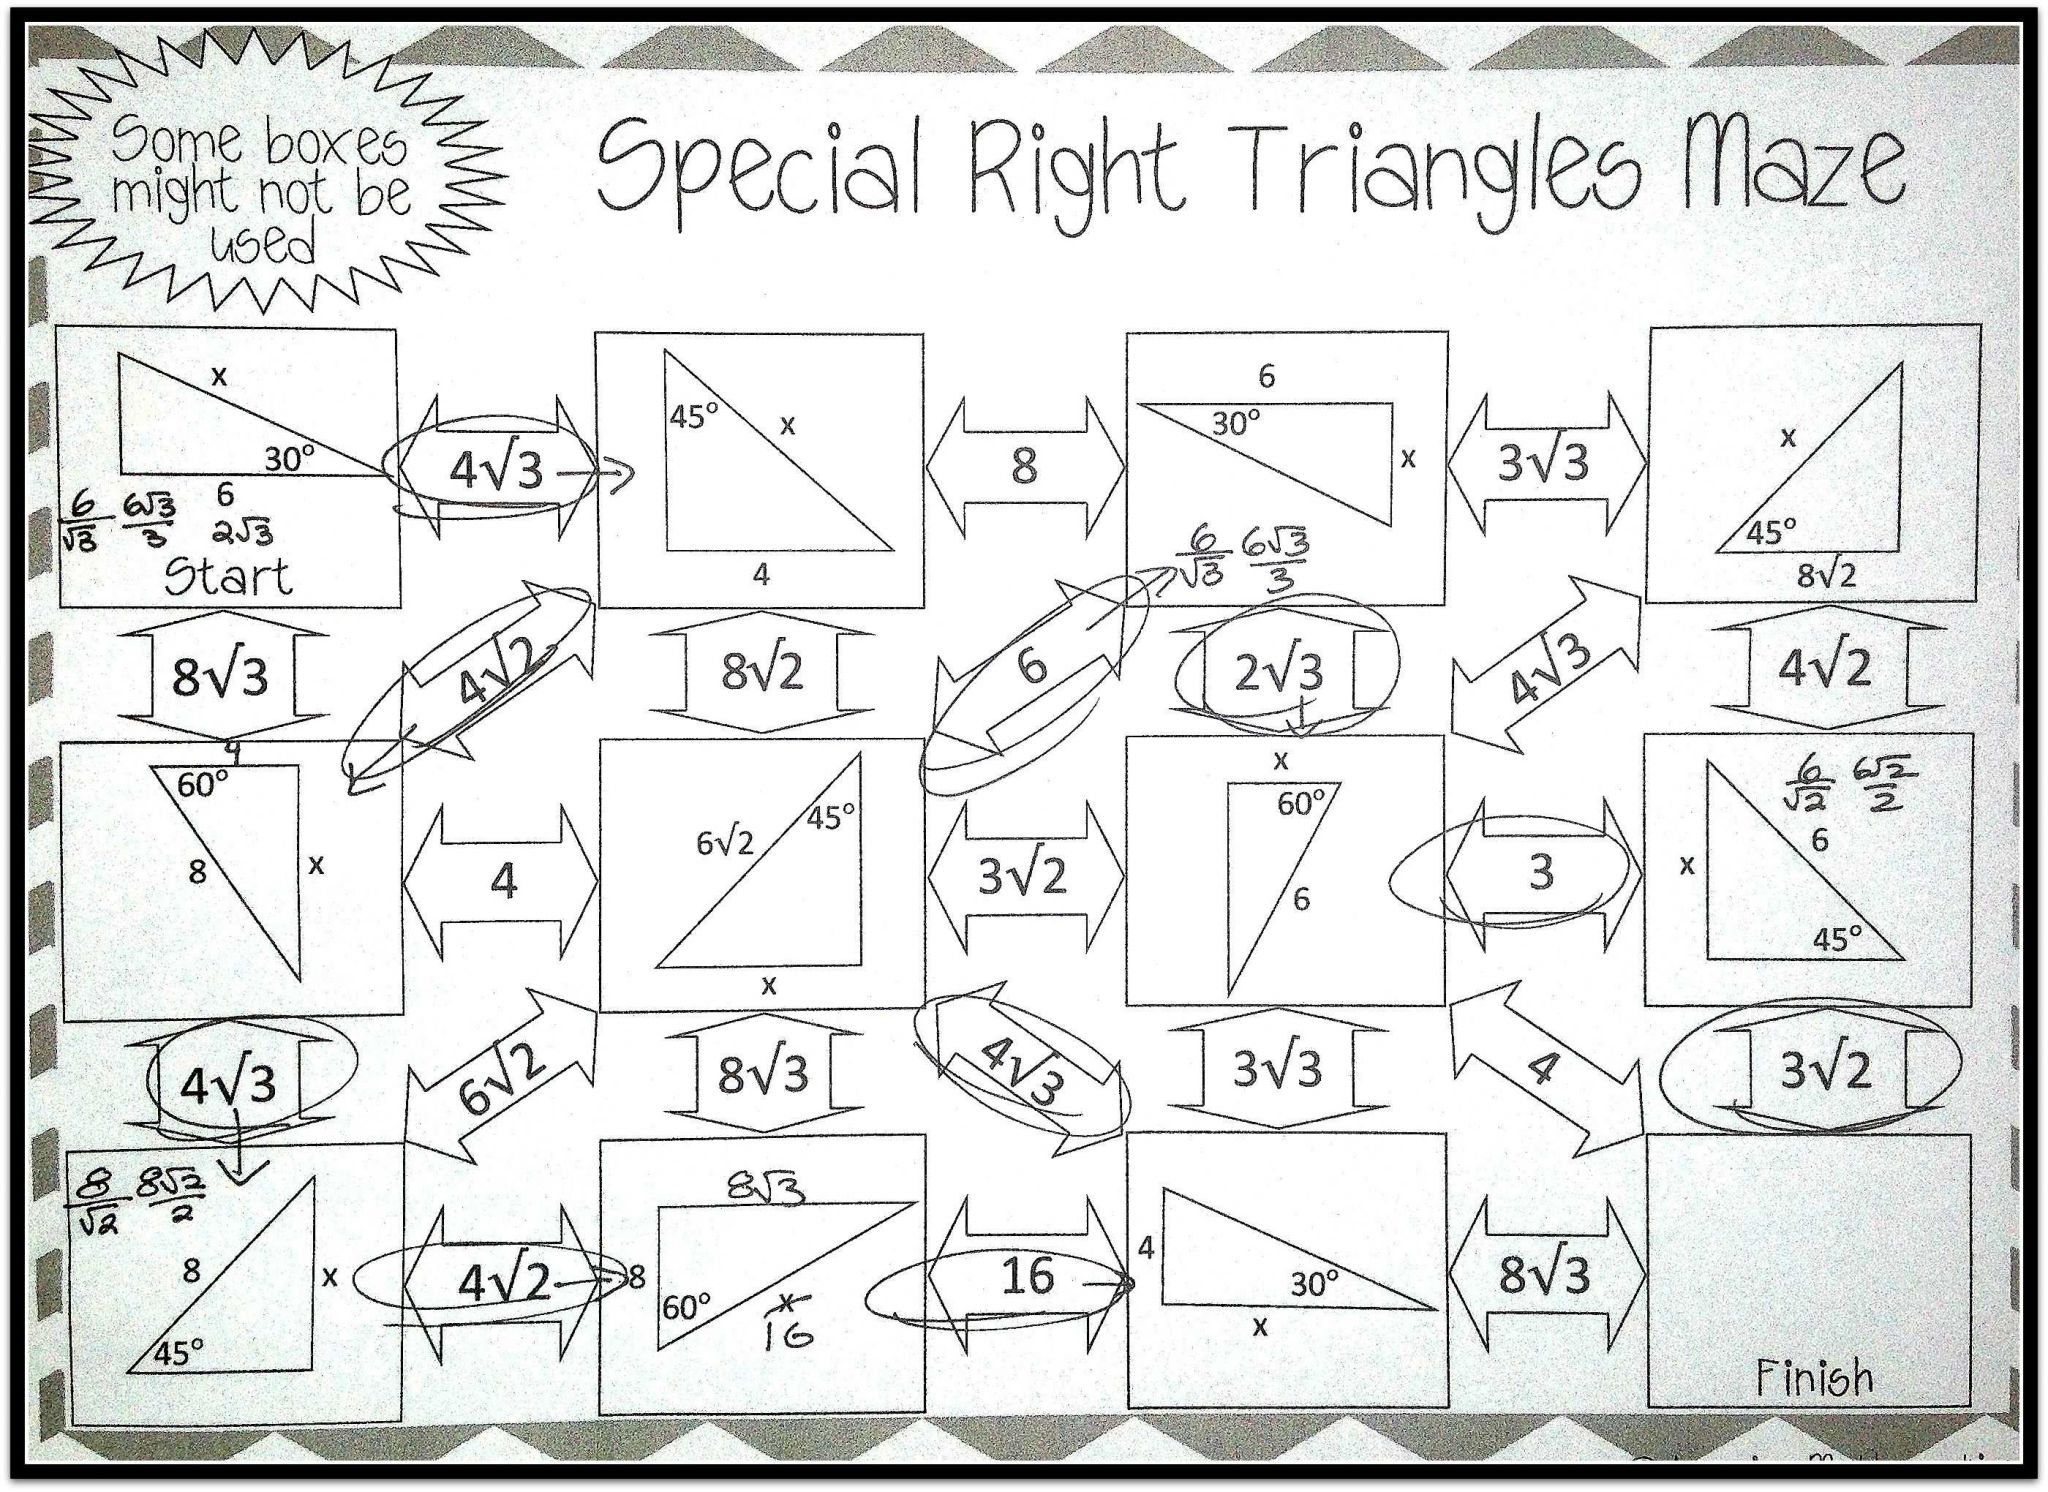 Right Triangle Word Problems Worksheet Also Special Right Triangles Maze Pinterest